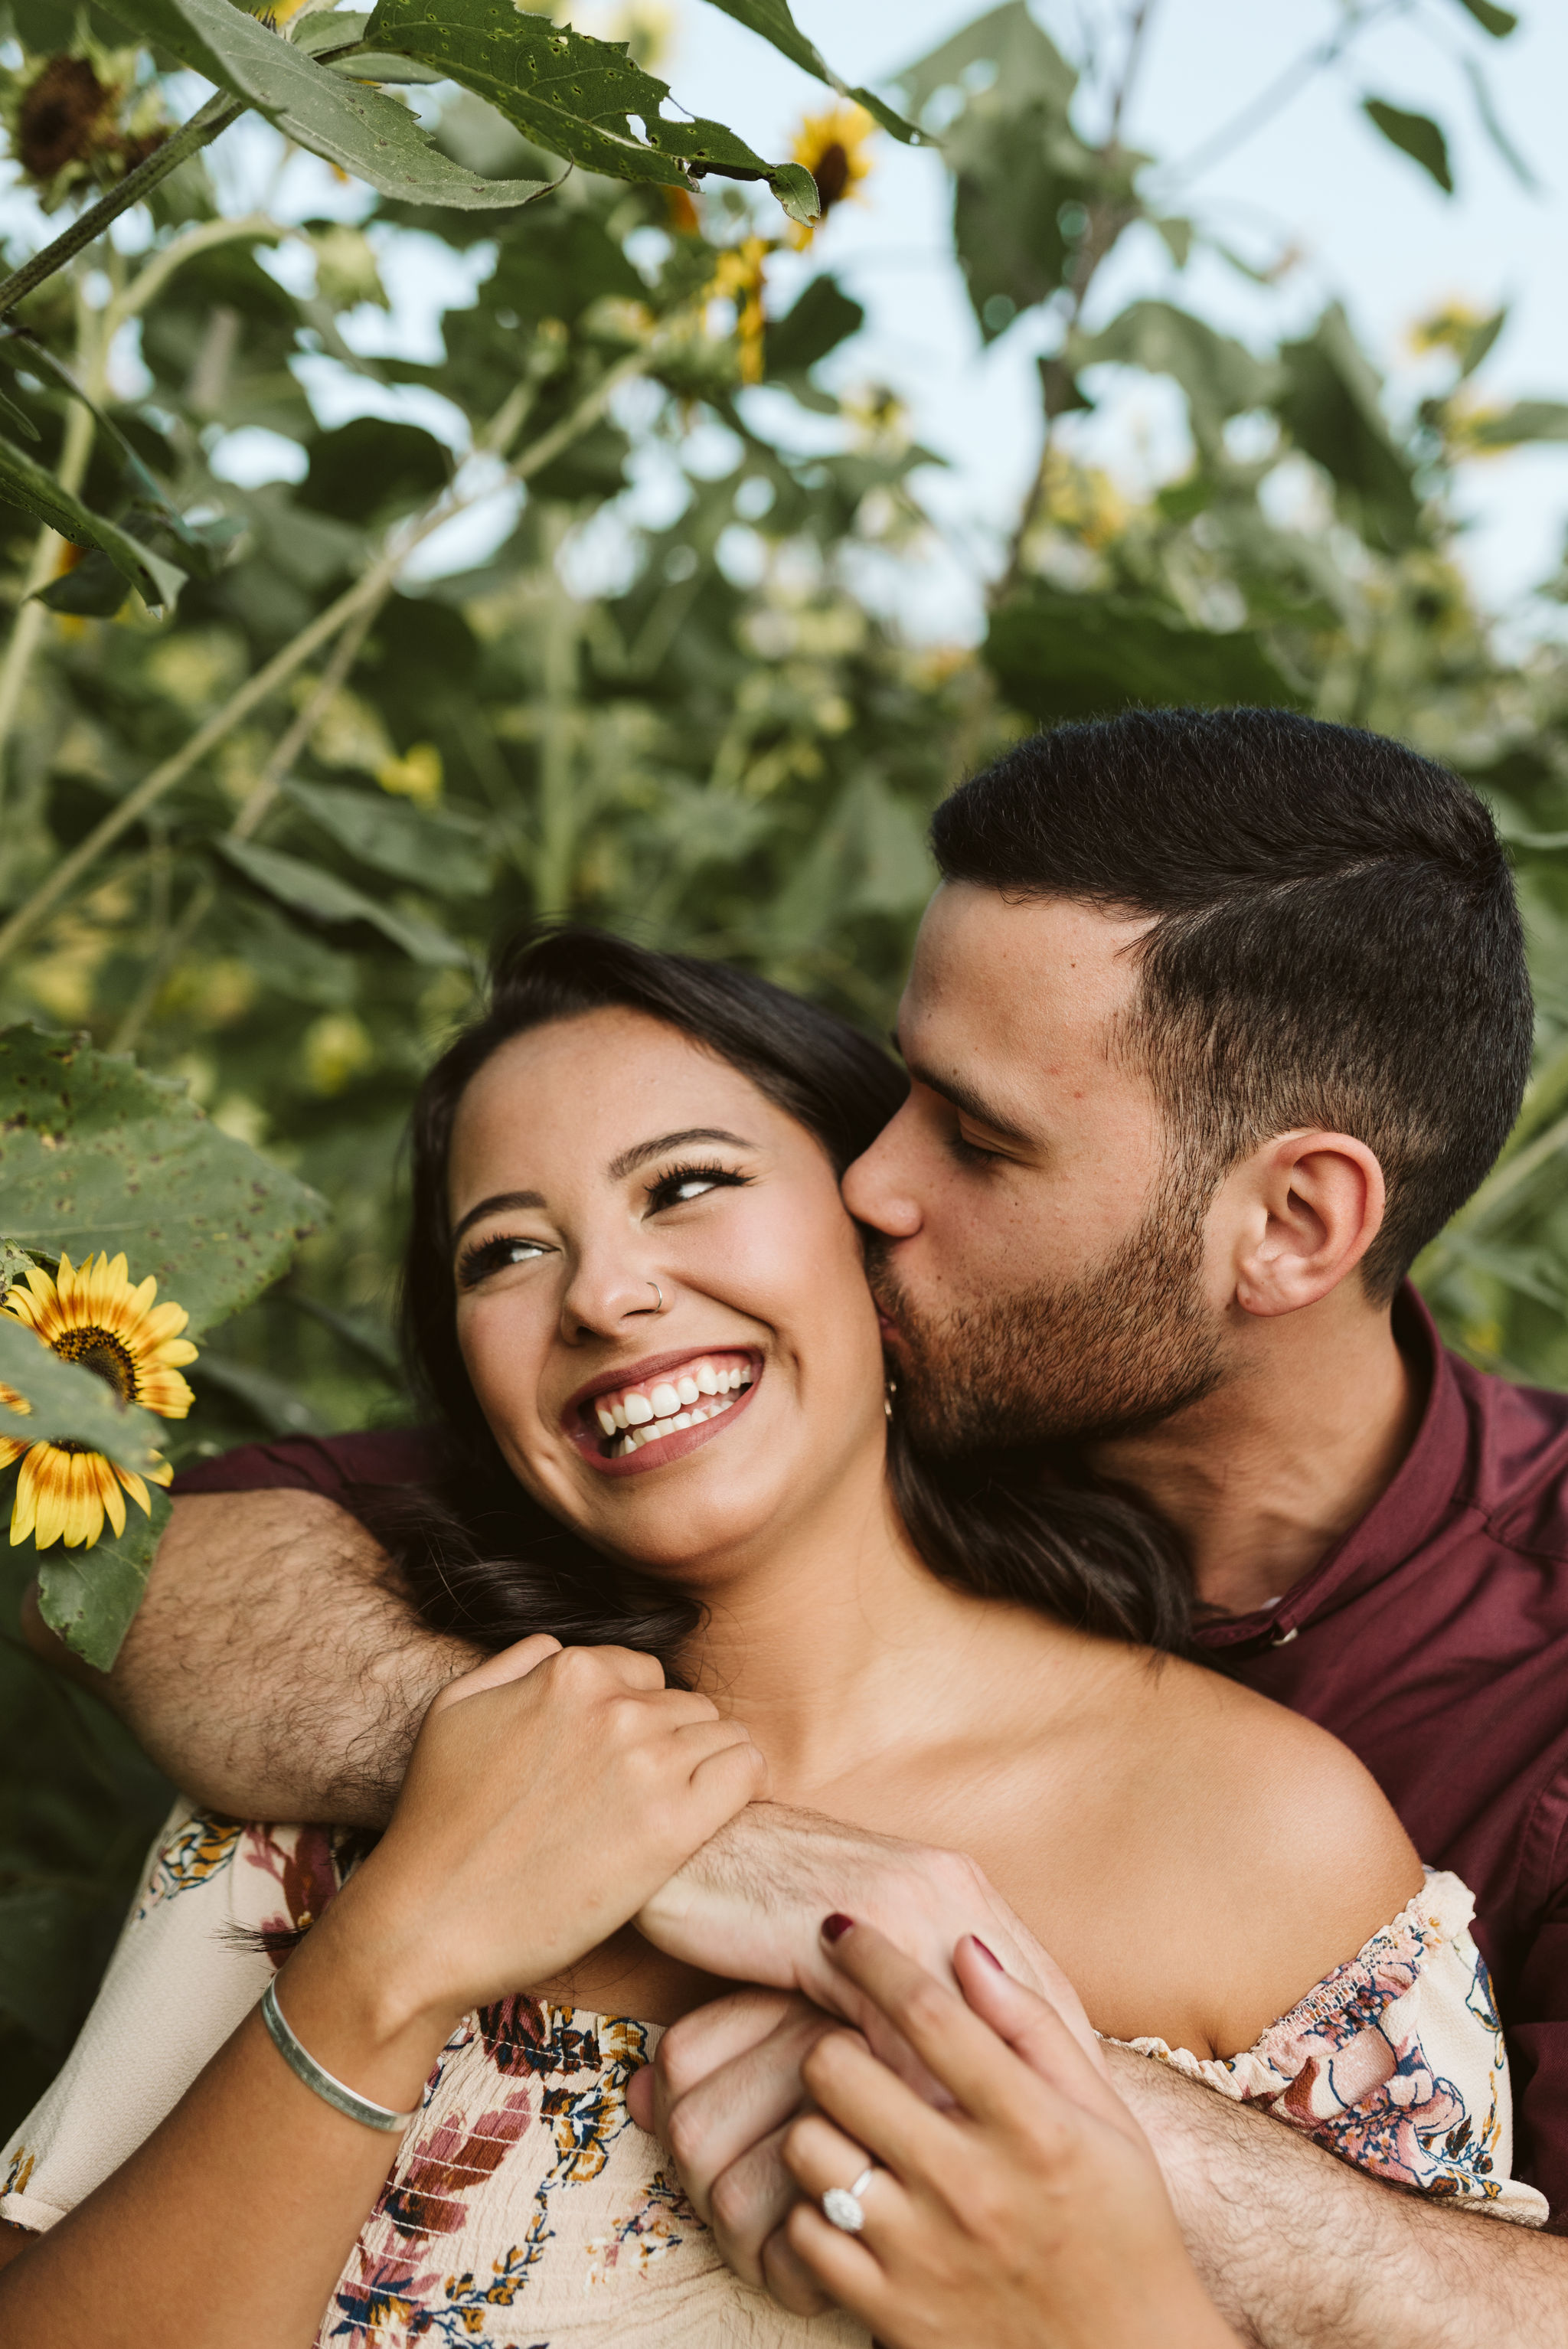 Frederick Maryland, Baltimore Wedding Photographer, Engagement, Bend in the River Farm, Outdoor, Rustic, Nature, Cute Closeup Photo of Groom Kissing Bride on the Cheek